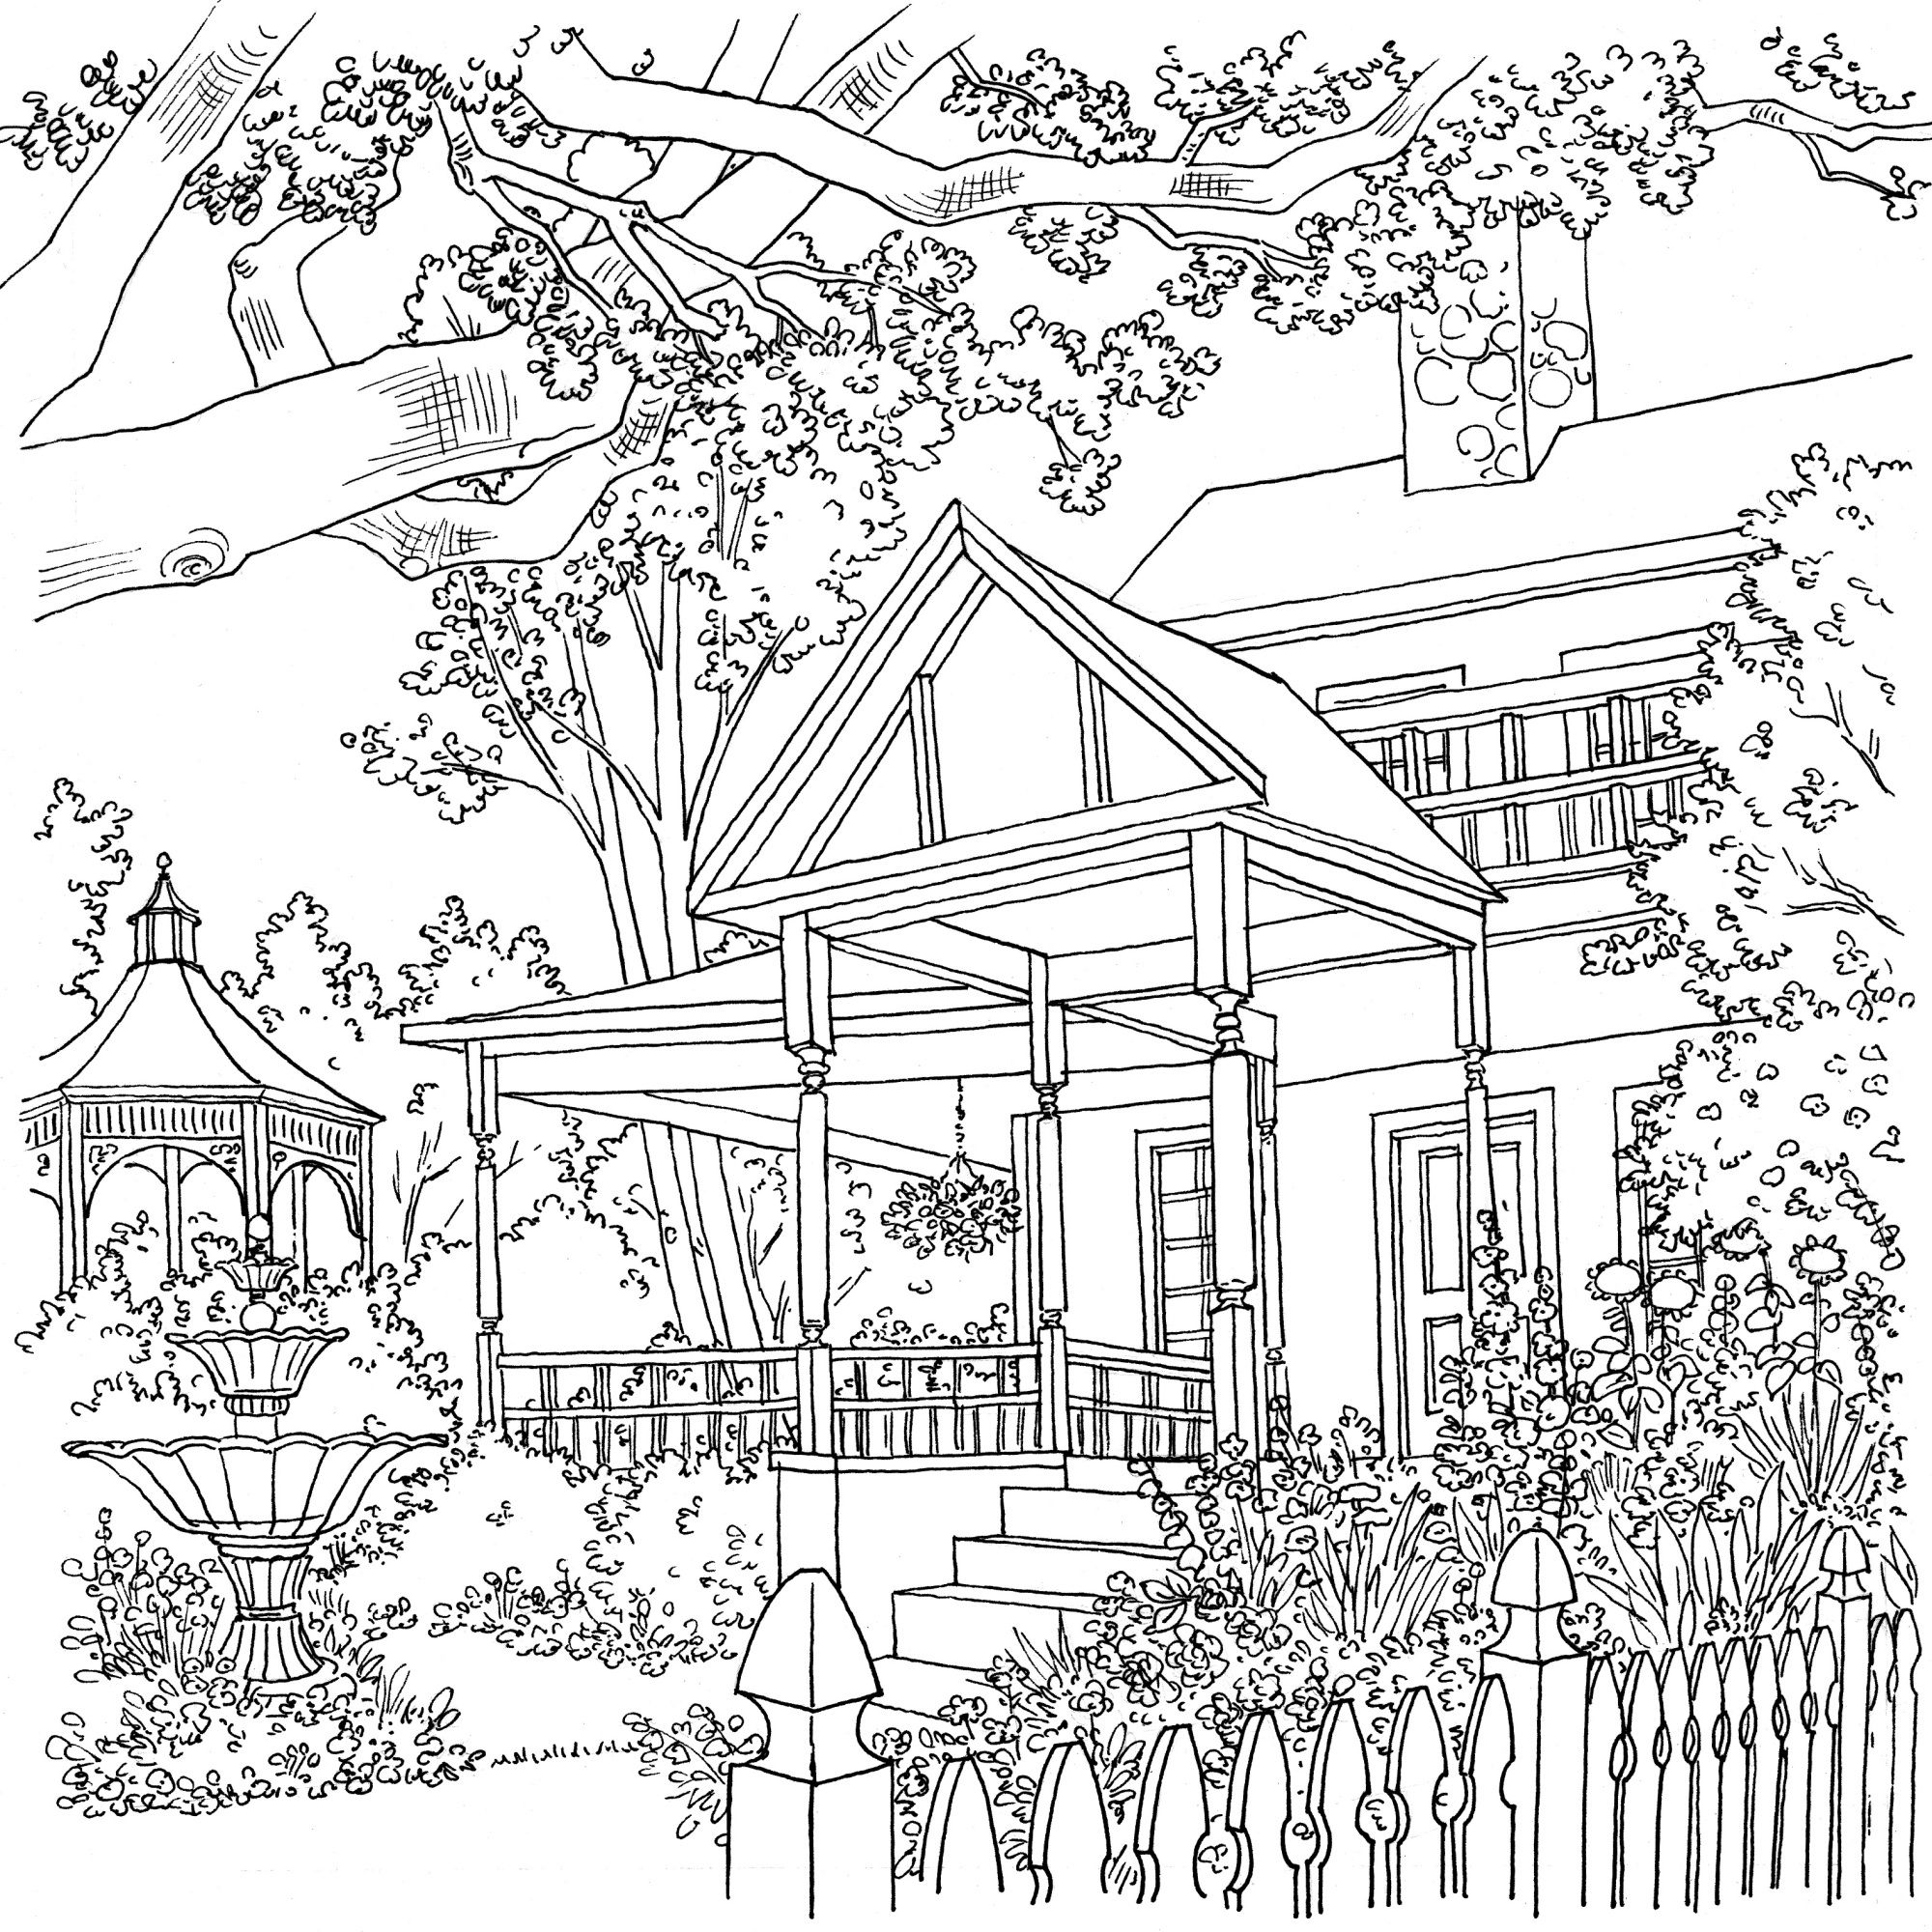 Check Out What Debbie Macomber S New Coloring Book The World Of Debbie Macomber Come Home To Color Has To Offer Debbie Macomber Coloring Book Coloring Books Coloring Pages